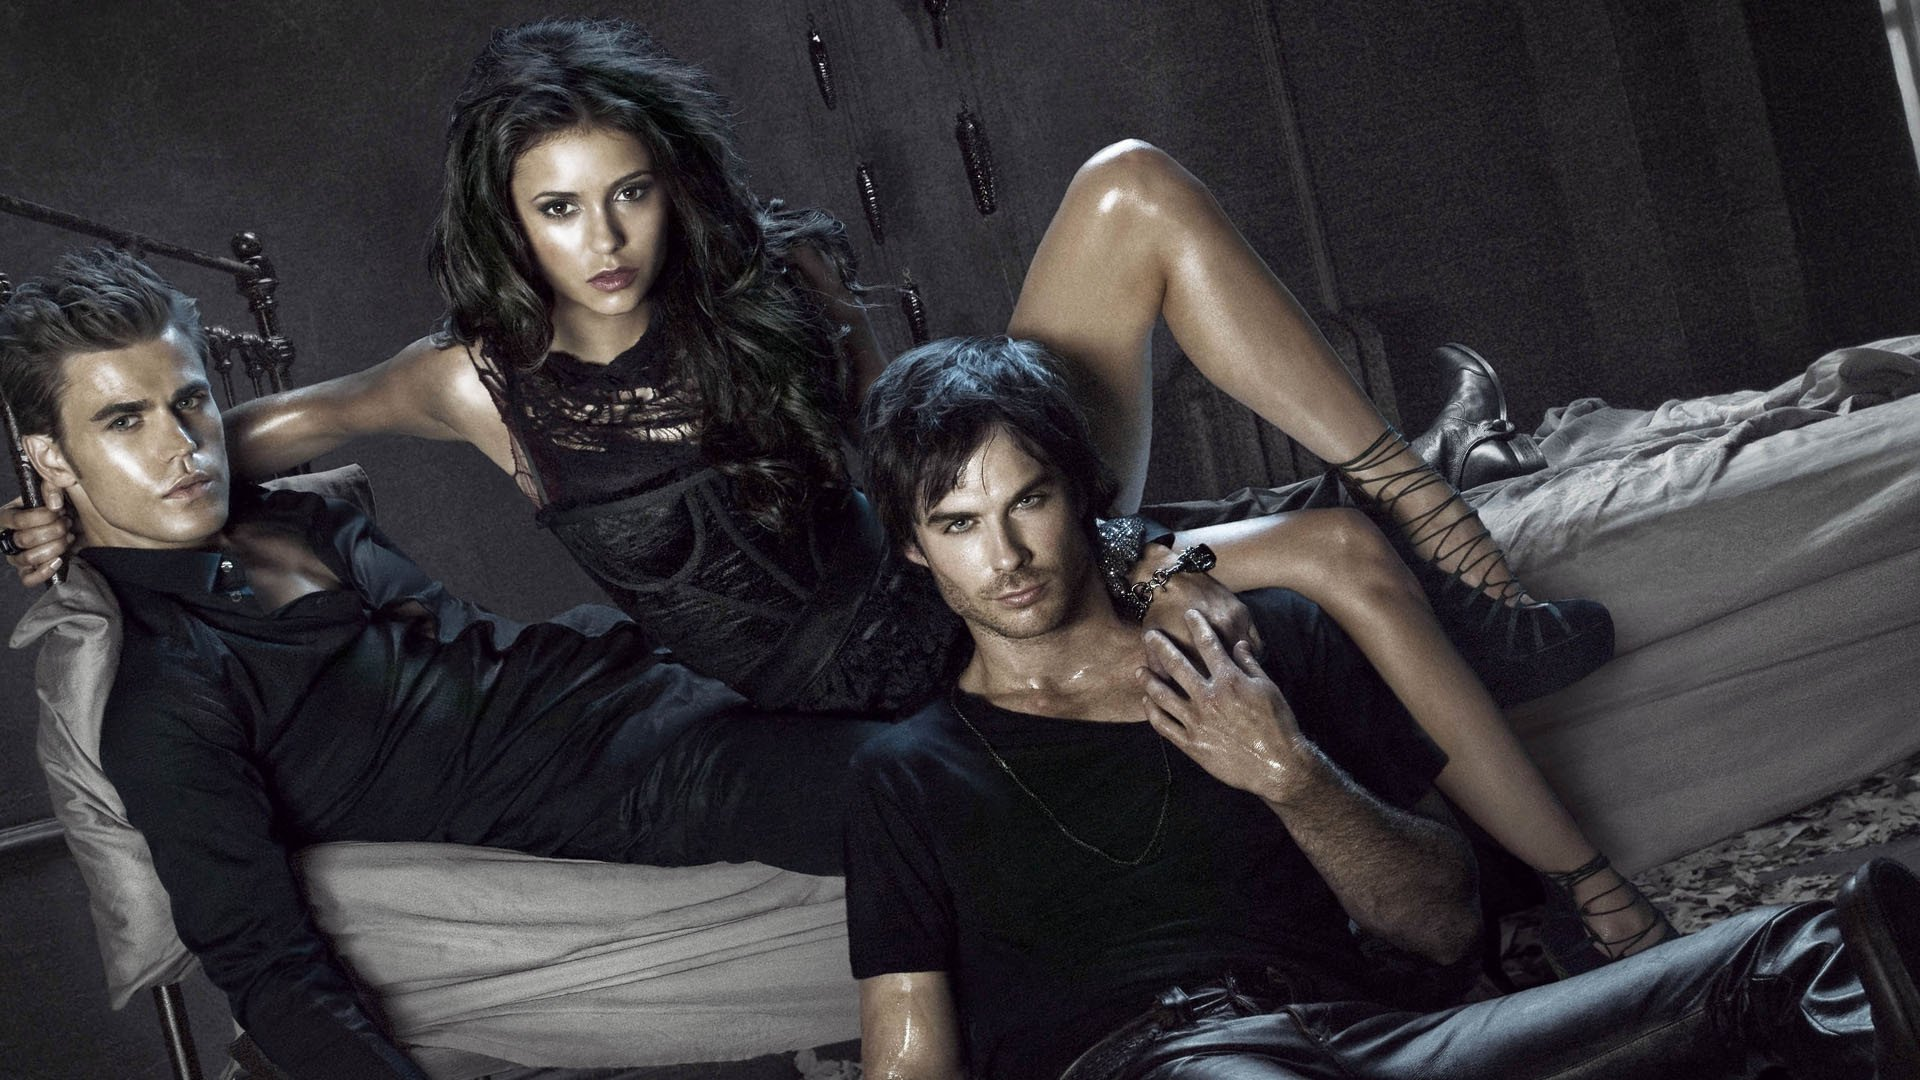 Wallpaper The Vampire Diaries: The Vampire Diaries HD Wallpapers, Pictures, Images